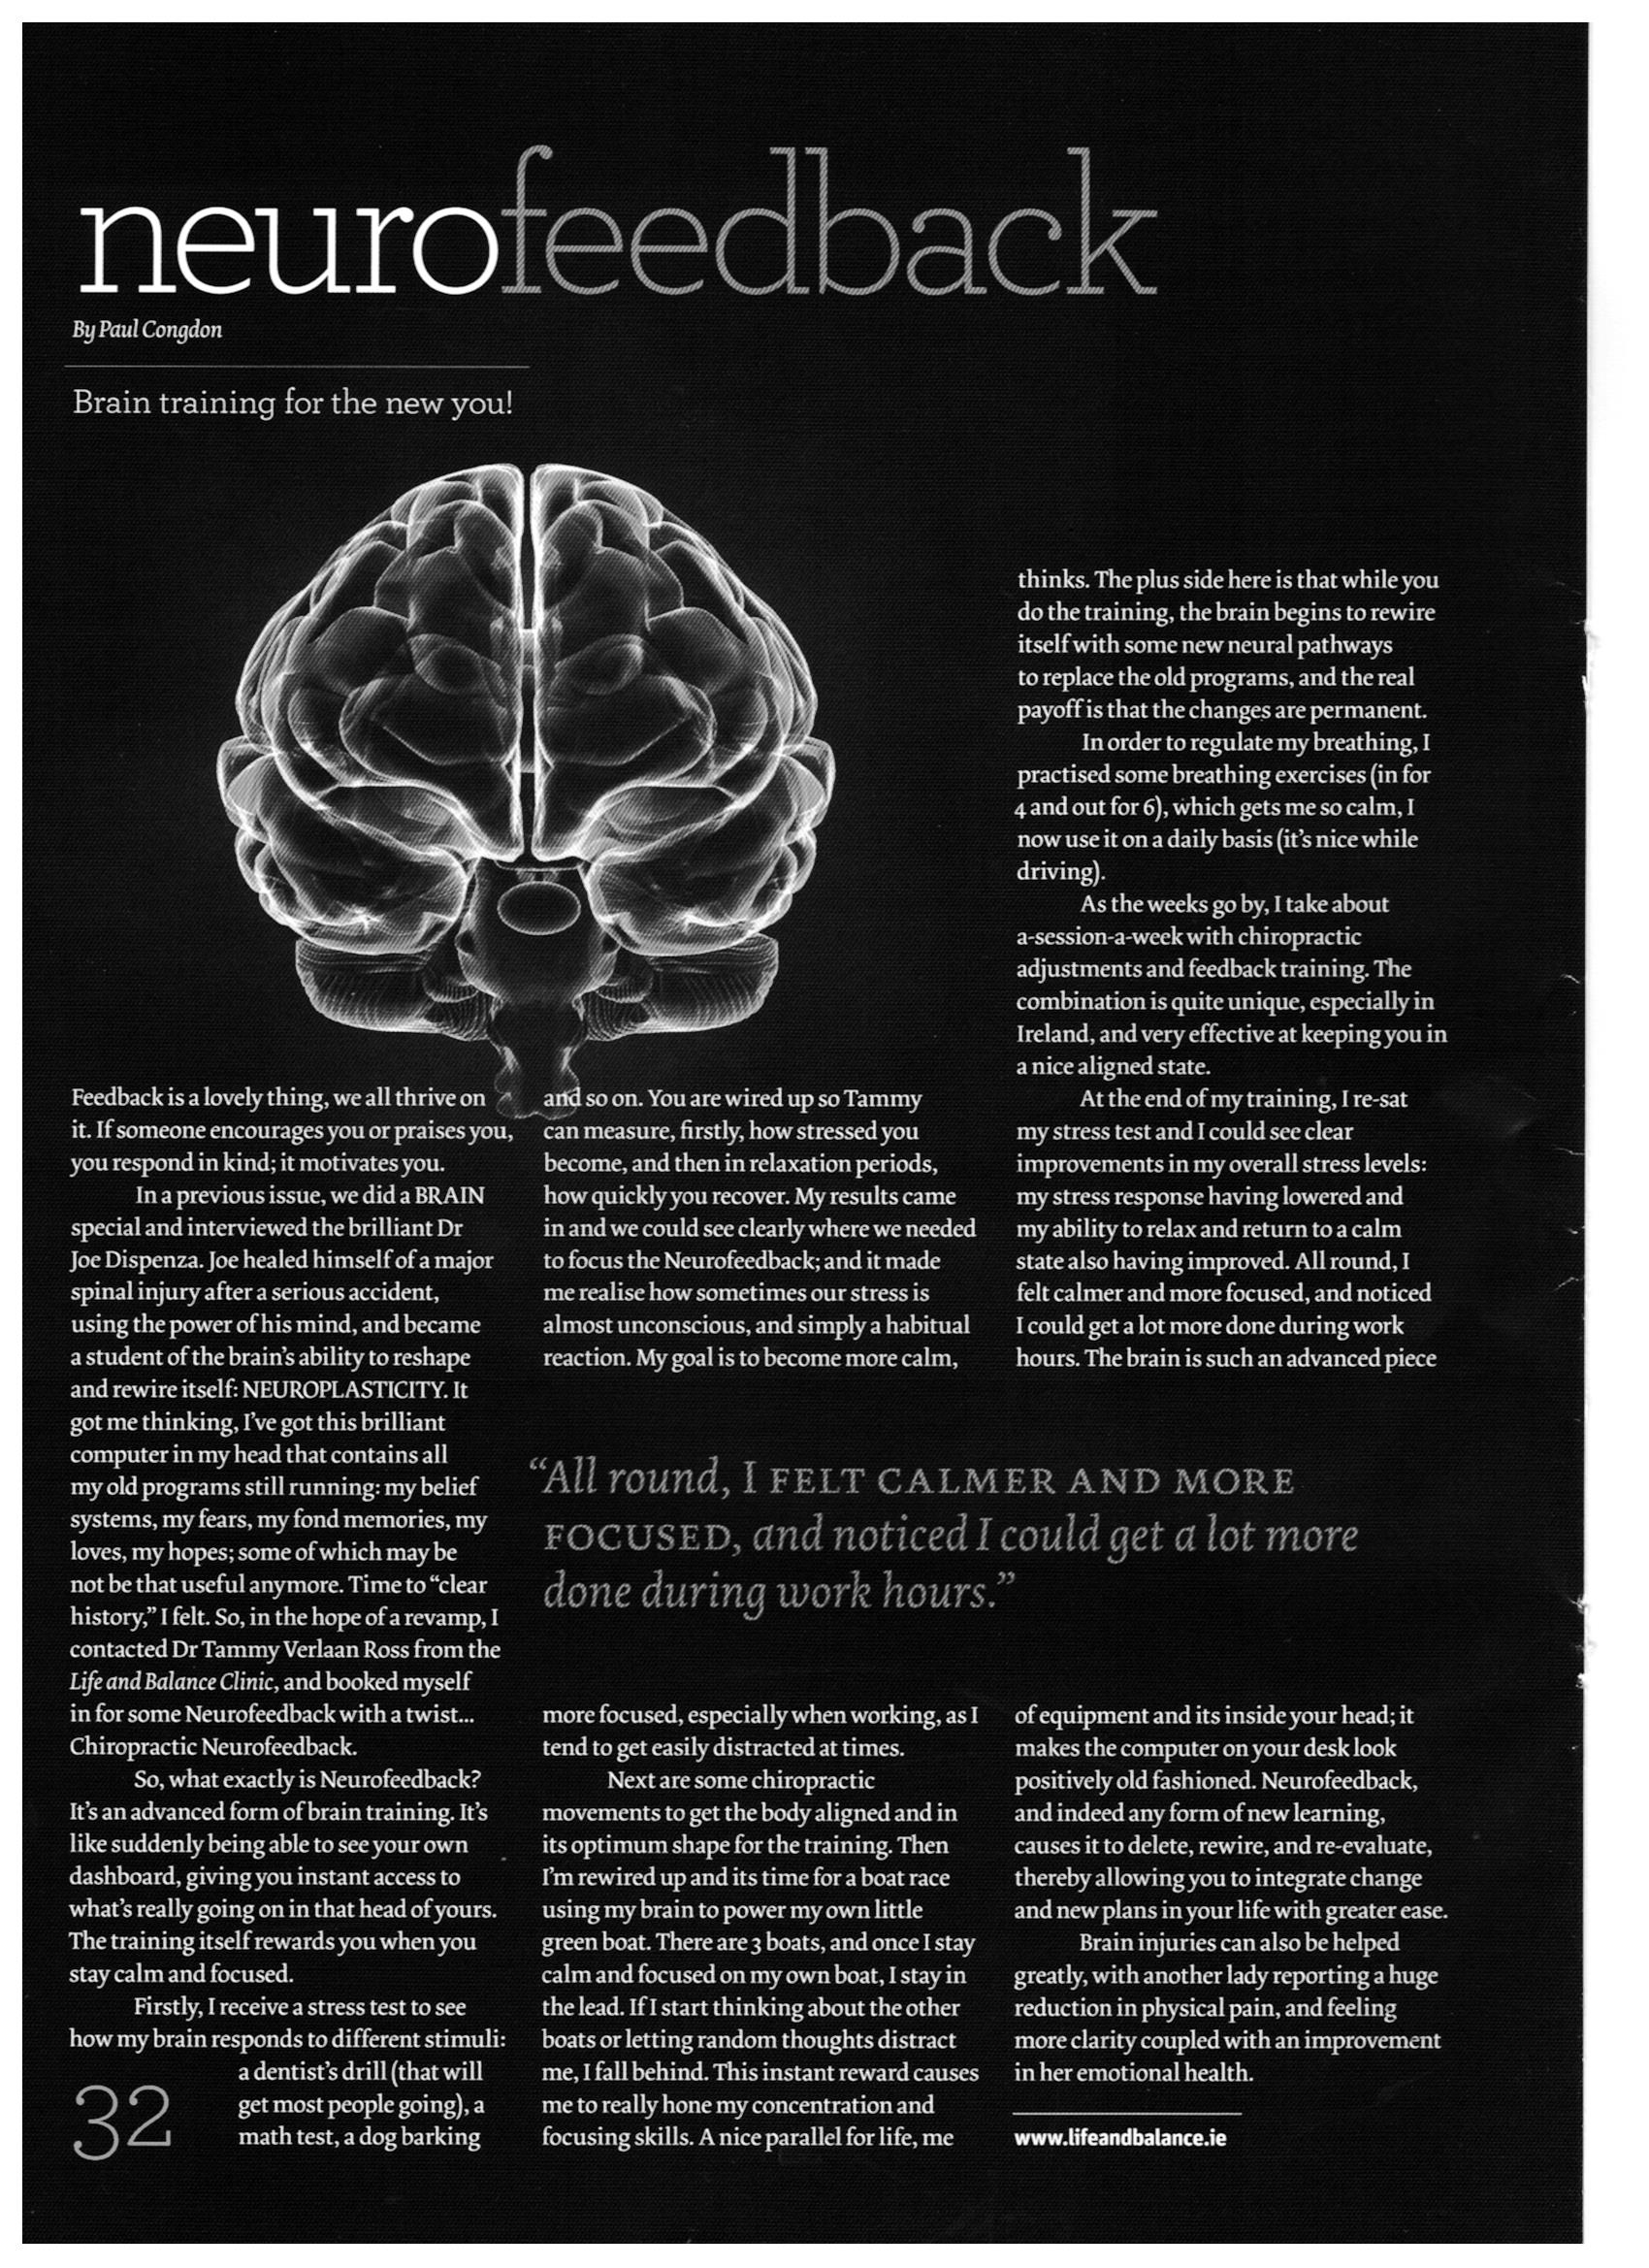 Positive Life magazine on Chiropractic and Neurofeedback at Life and Balance Centre